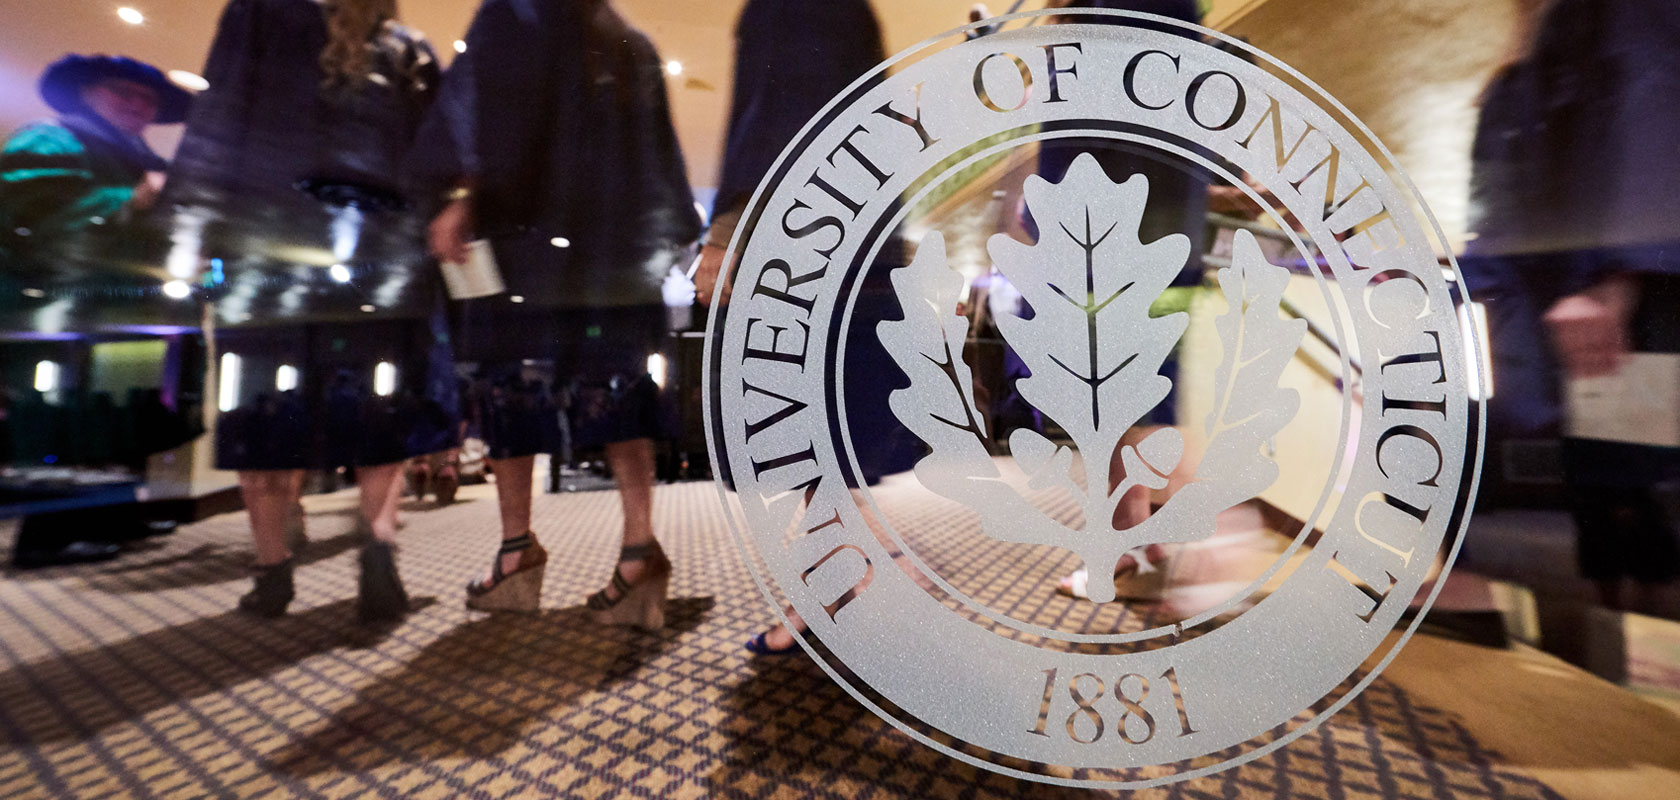 University of Connecticut seal at commencement